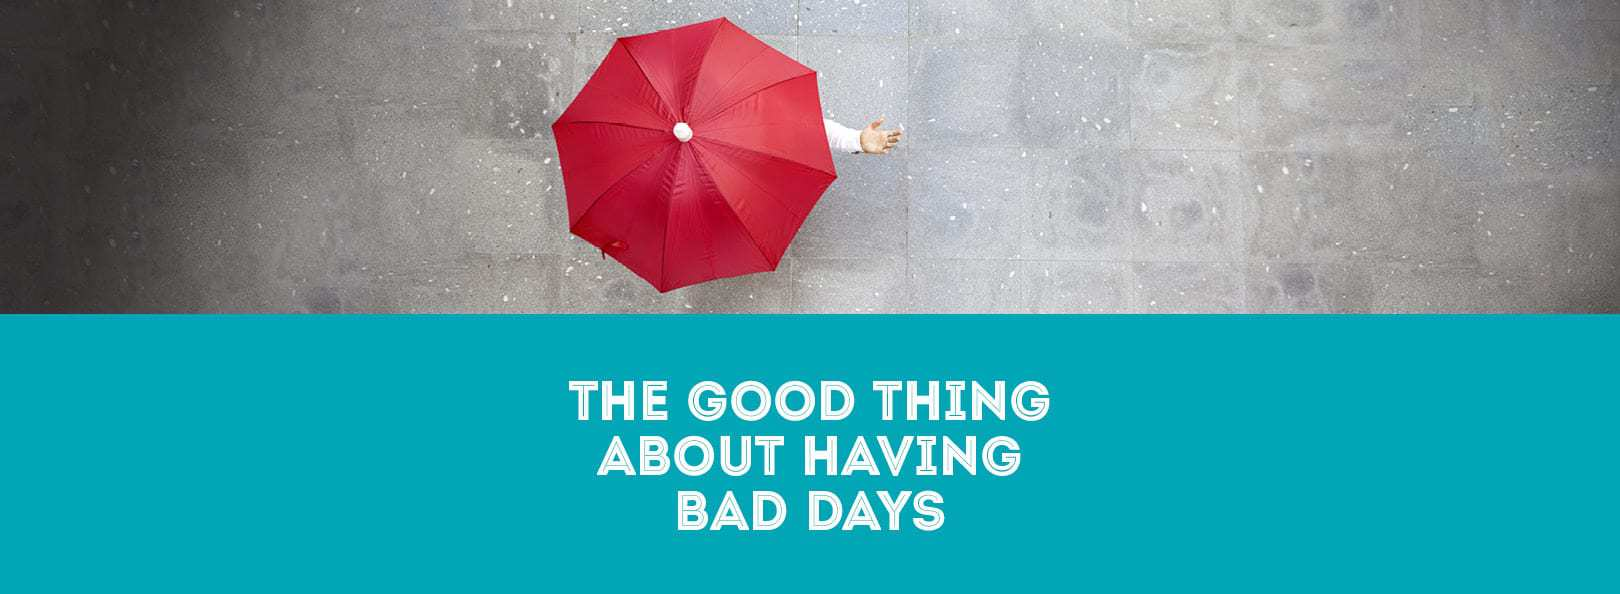 The Good Thing About Having Bad Days